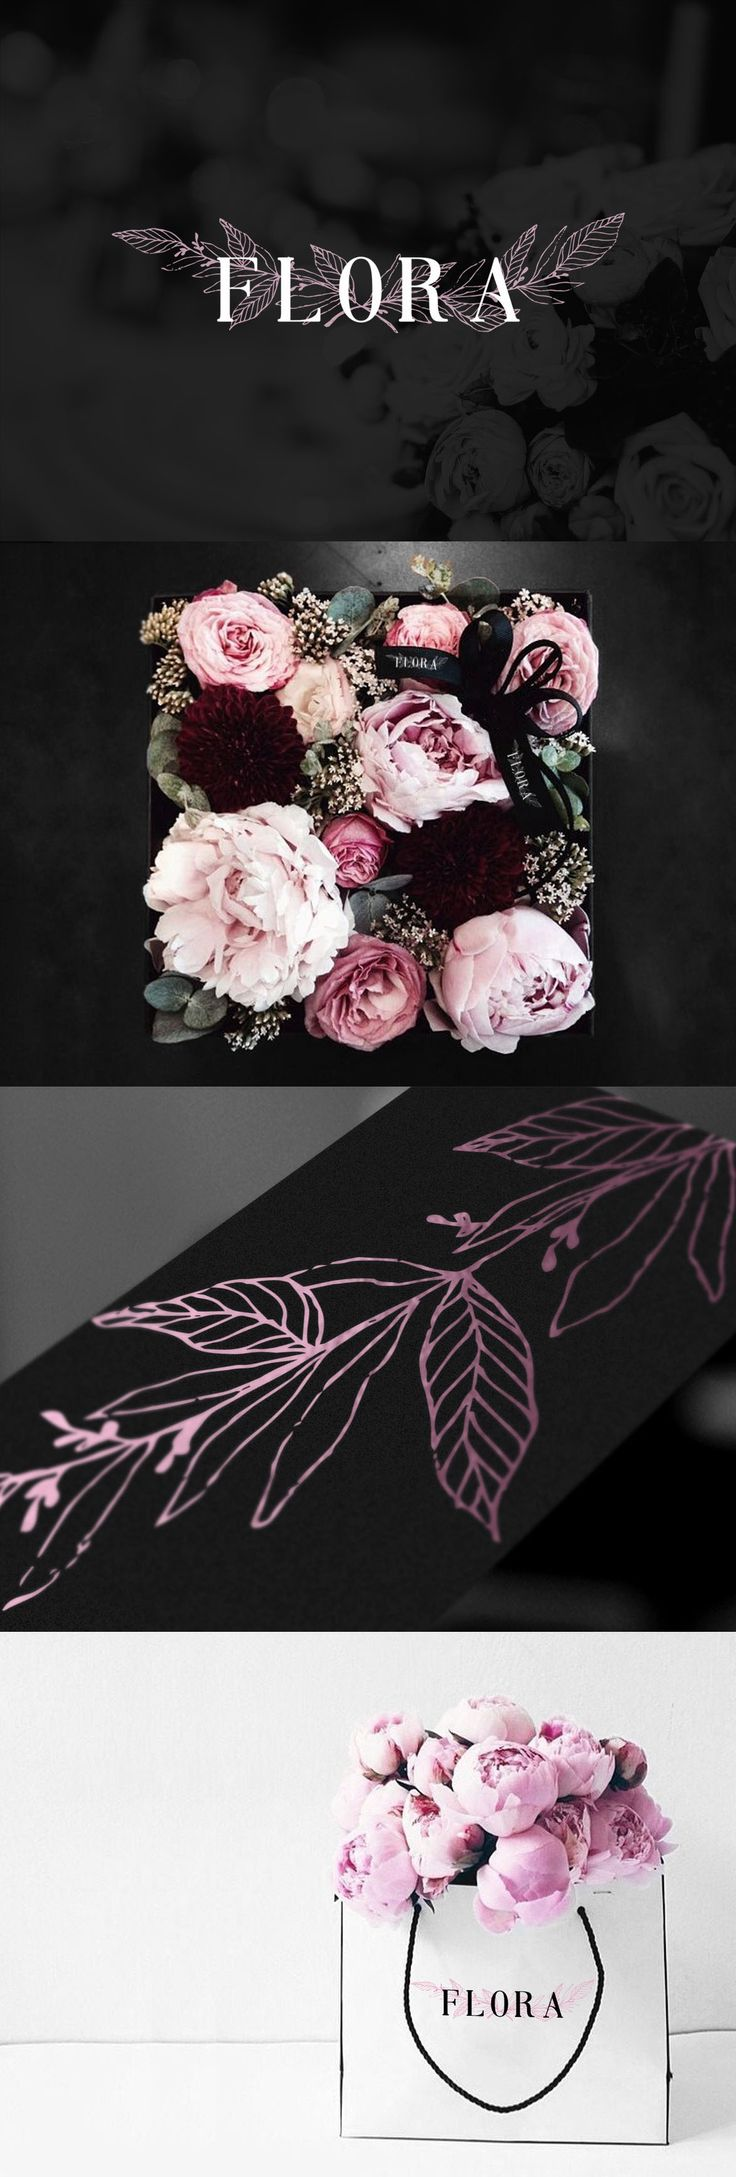 Floral Design Ideas new york wedding celebrates elegance Find This Pin And More On Perfumery